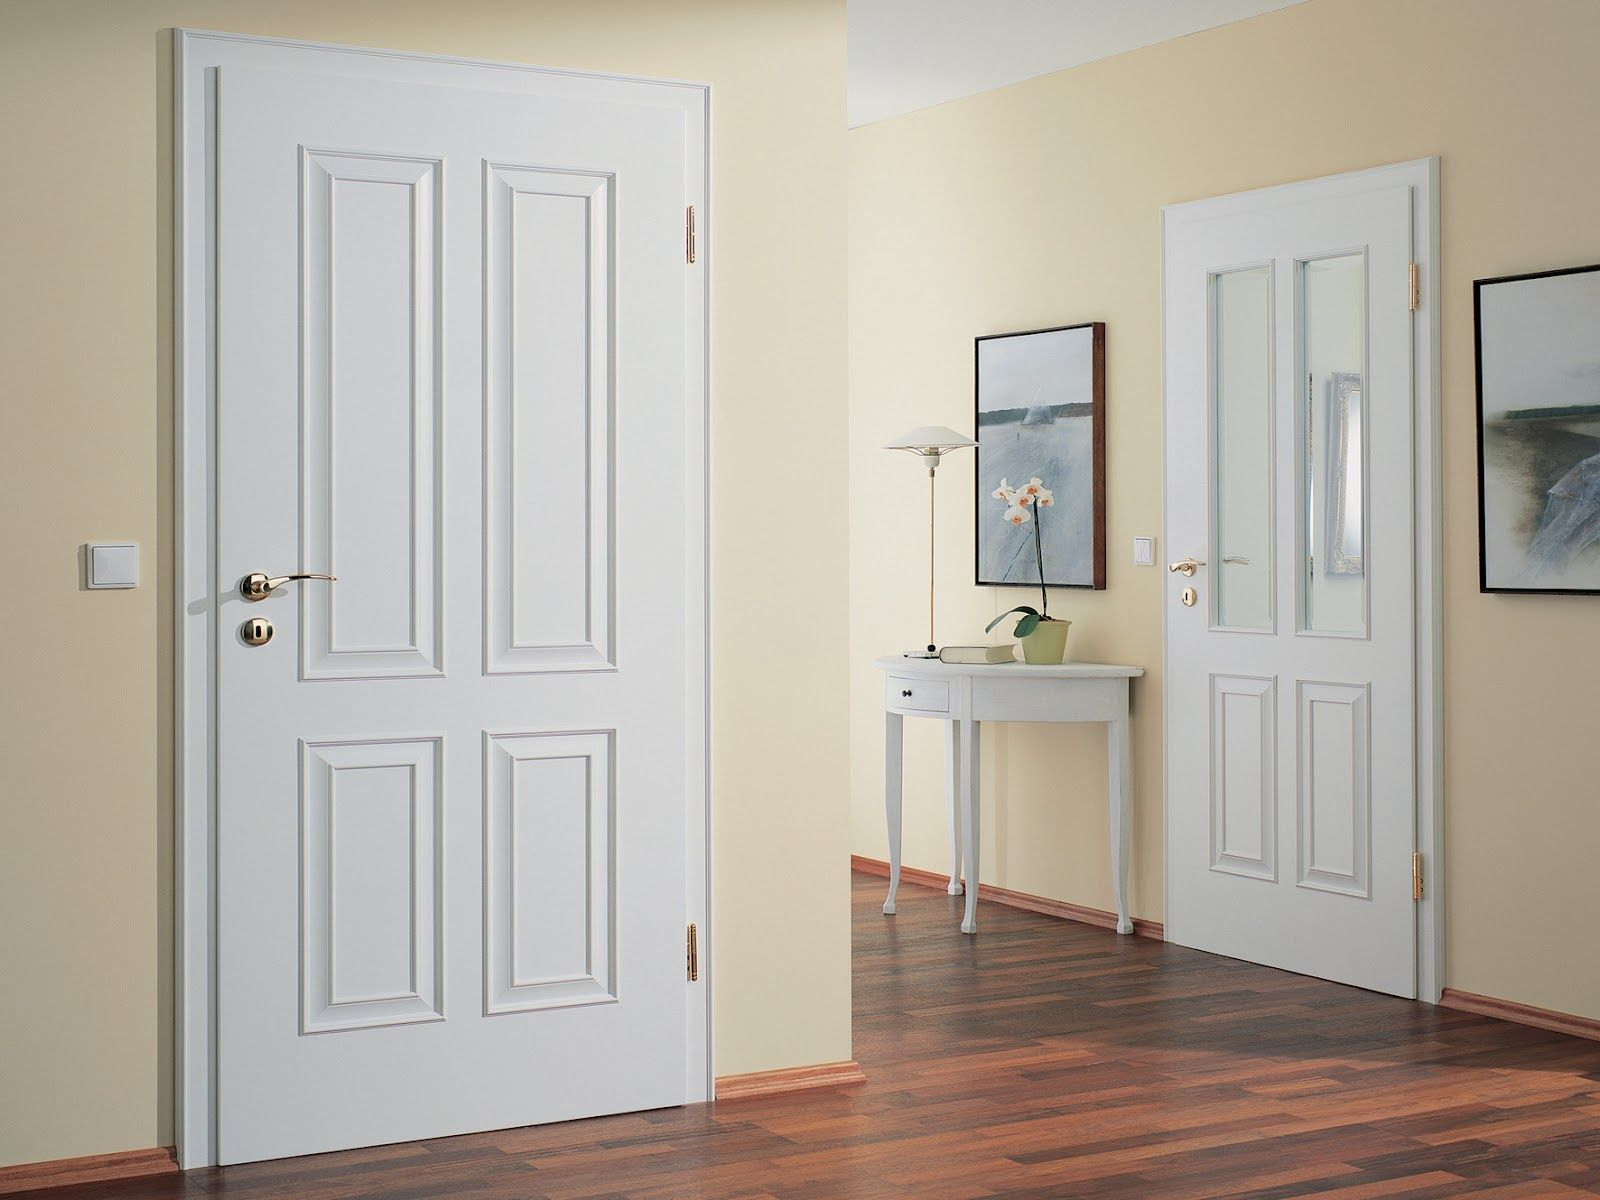 Interior security door manufacturers modern interior doors design ideas 2015 pinterest Interior doors manufacturers